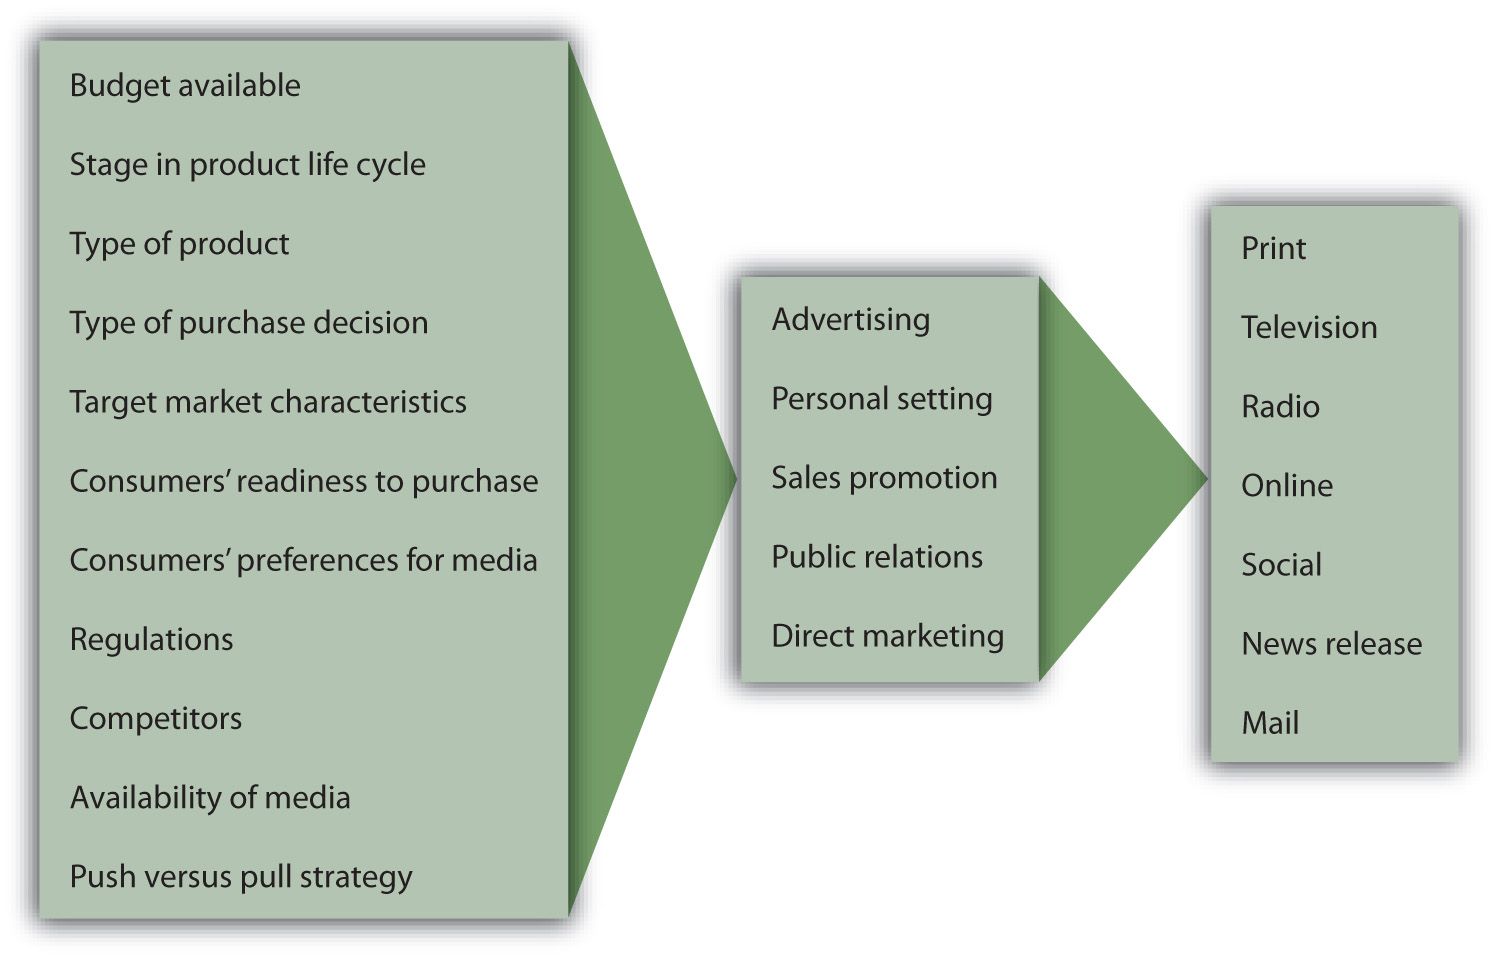 factors influence the promotional mix Characteristics of the product itself can influence the promotional mix a product can be classified as: business product: are often custom-made and not well suited as mass promotion rely more on personal selling than on advertising this model proposes that consumers respond to marketing messages.